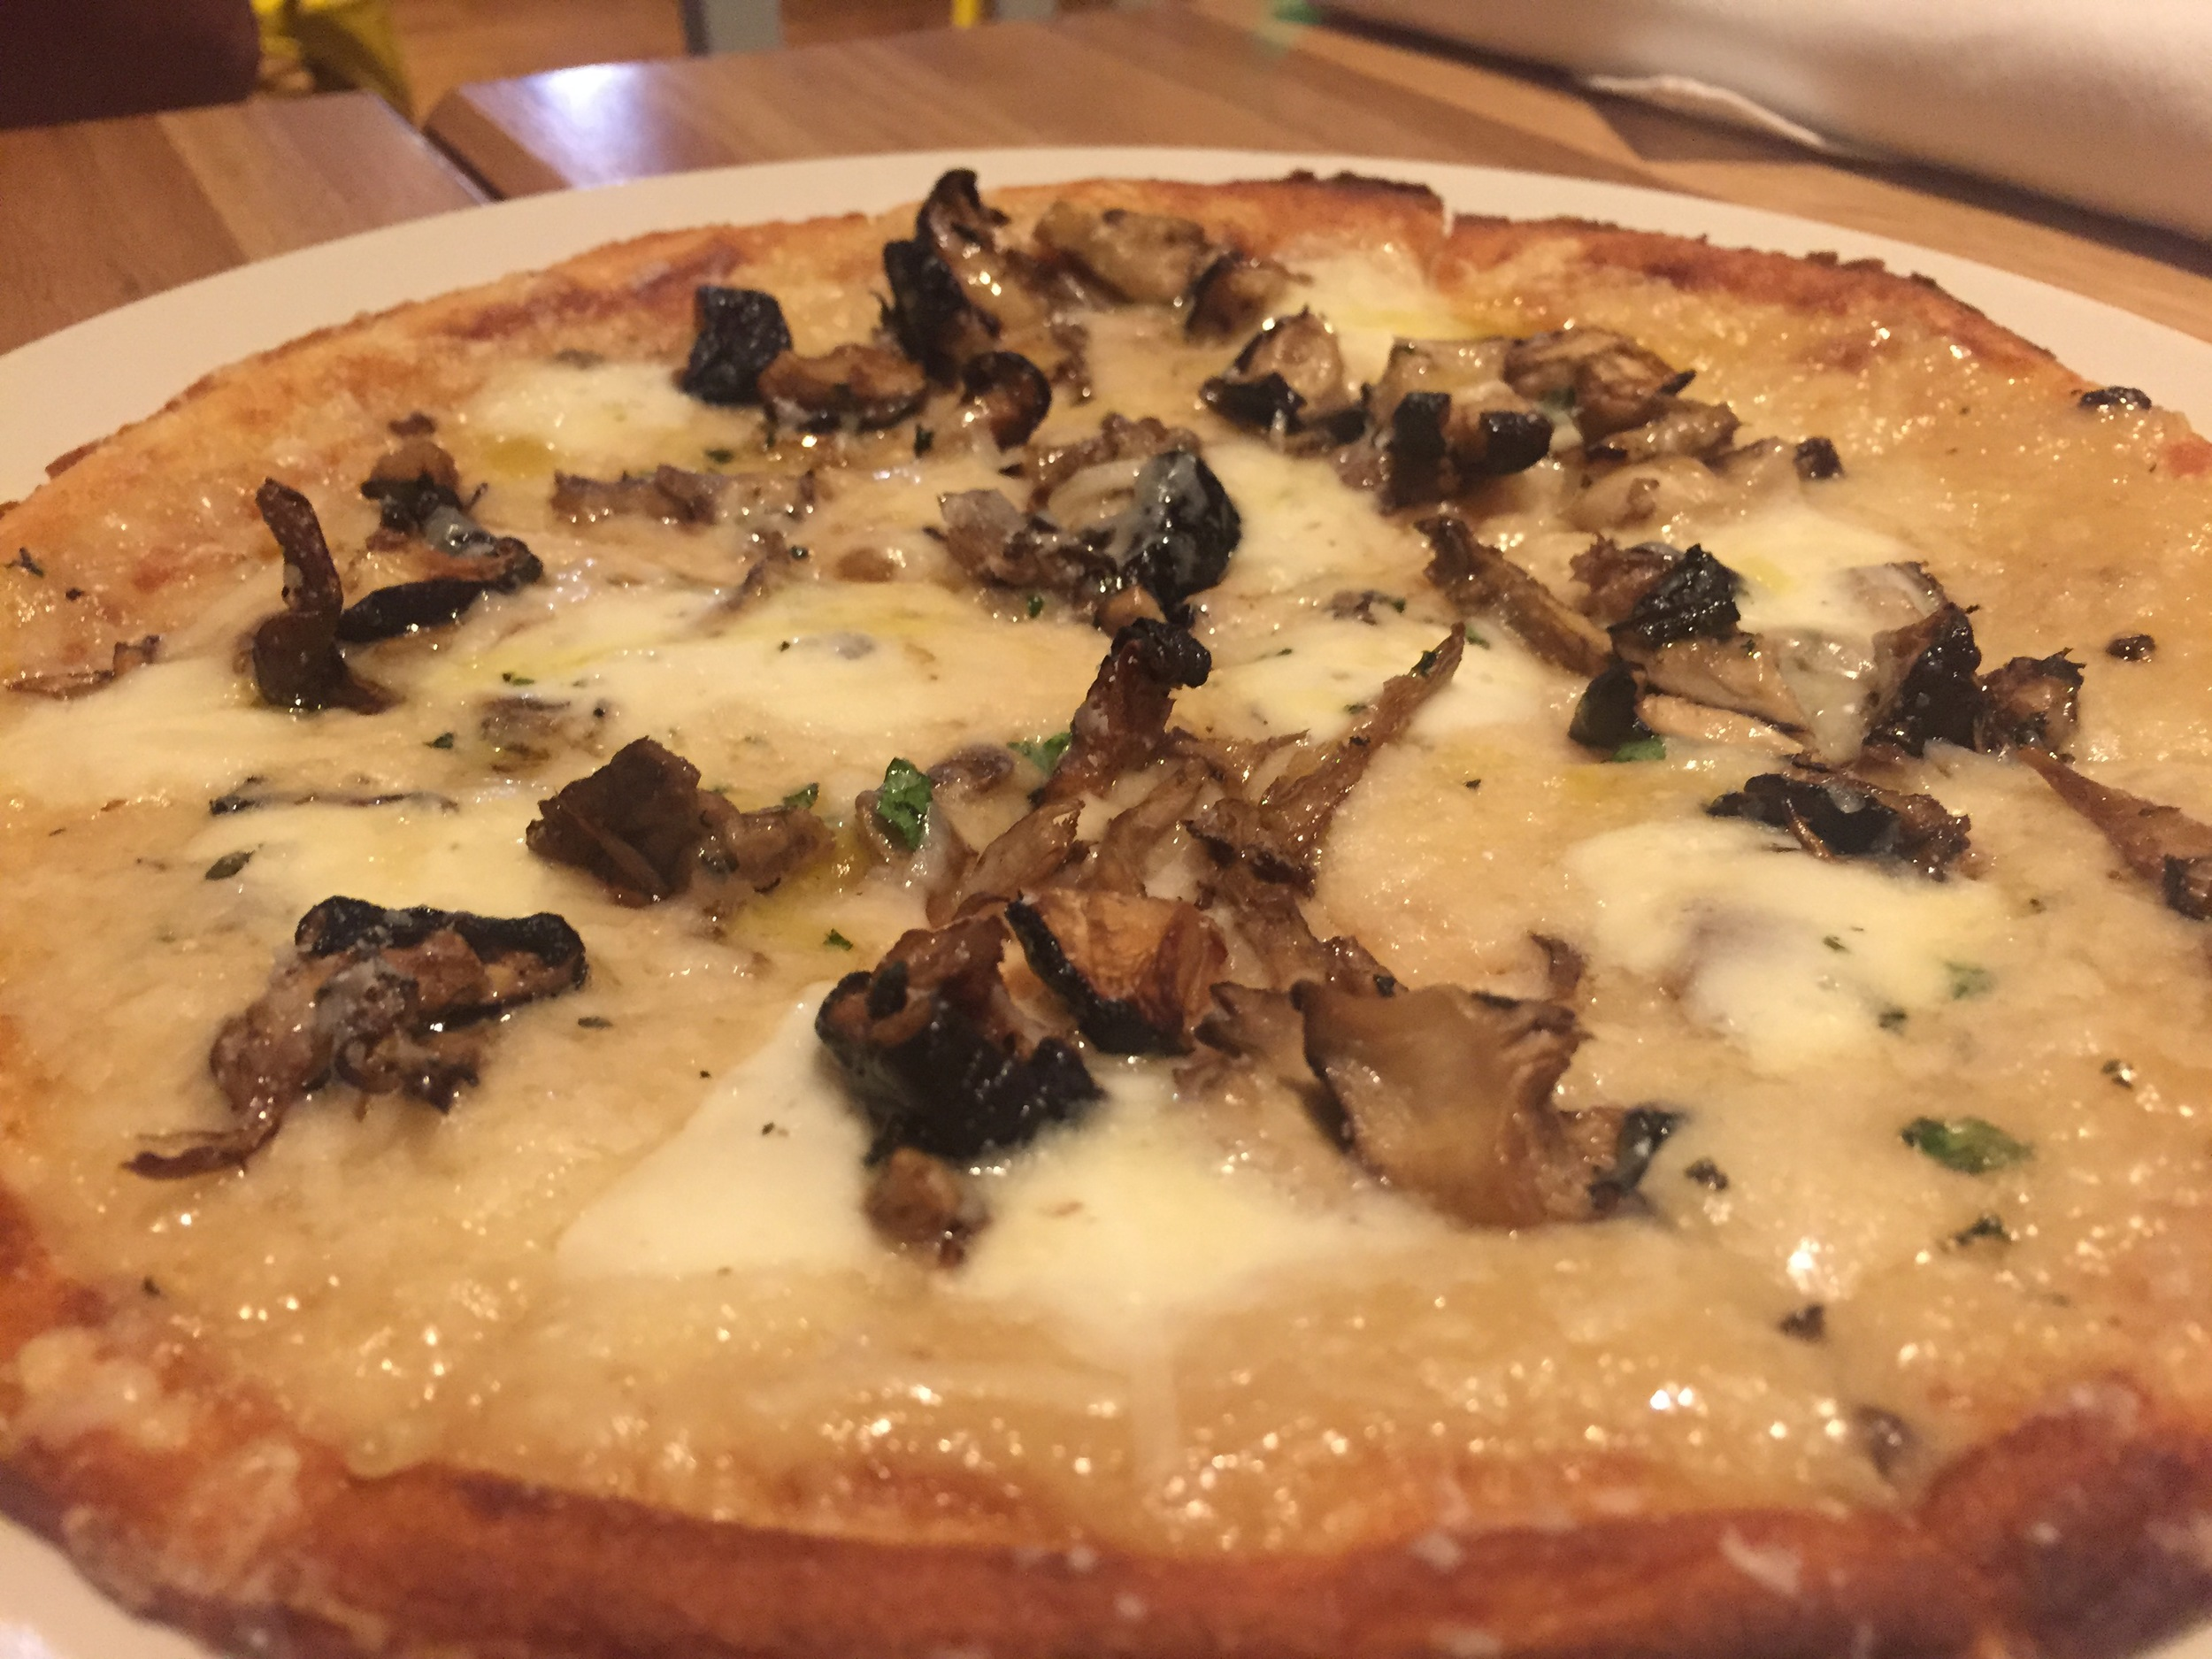 This was another time I got the Mushroom Pizza (with the gluten free crust) and added truffle oil to it.